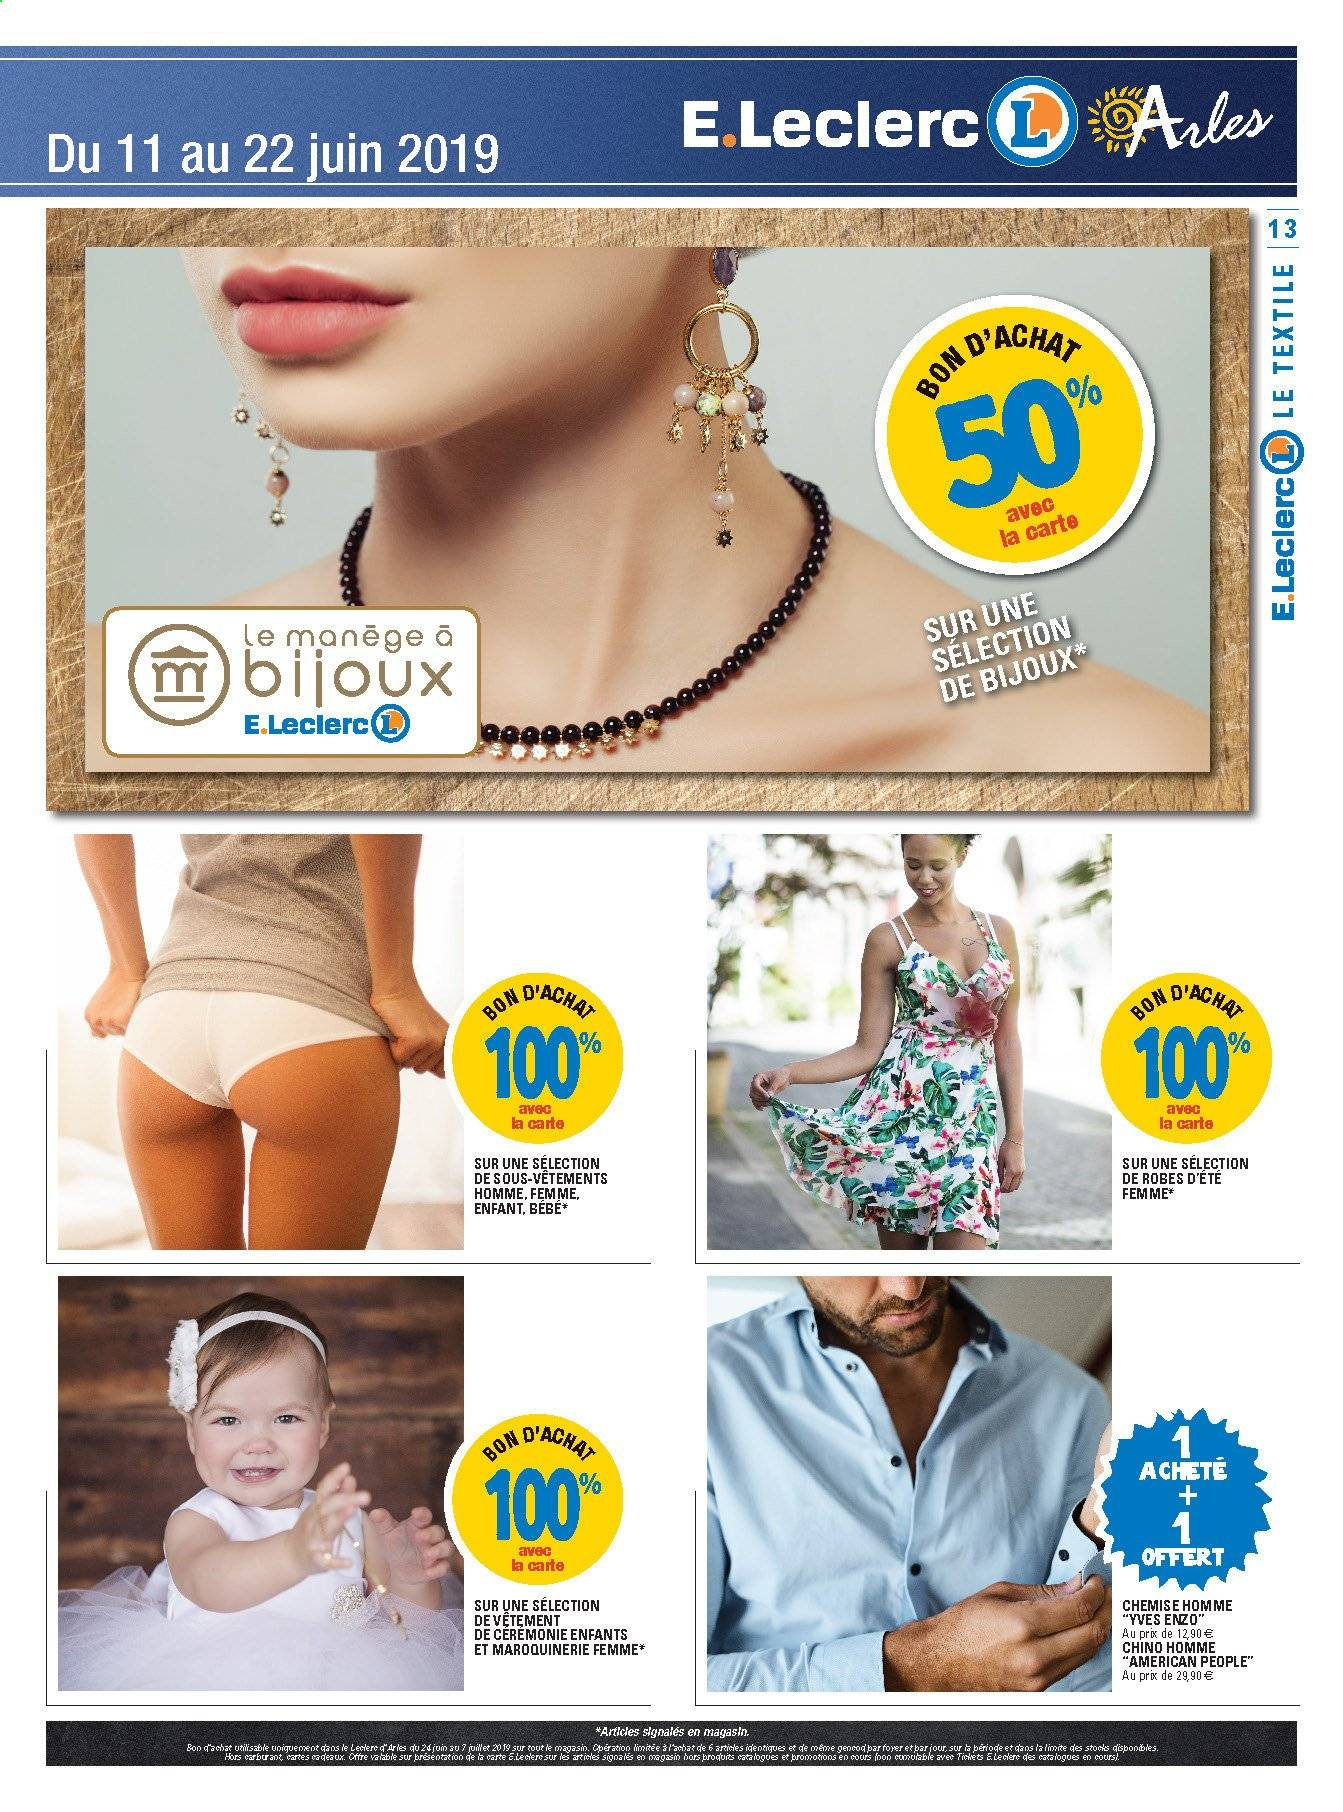 Catalogue E.Leclerc - 11.06.2019 - 22.06.2019. Page 13.